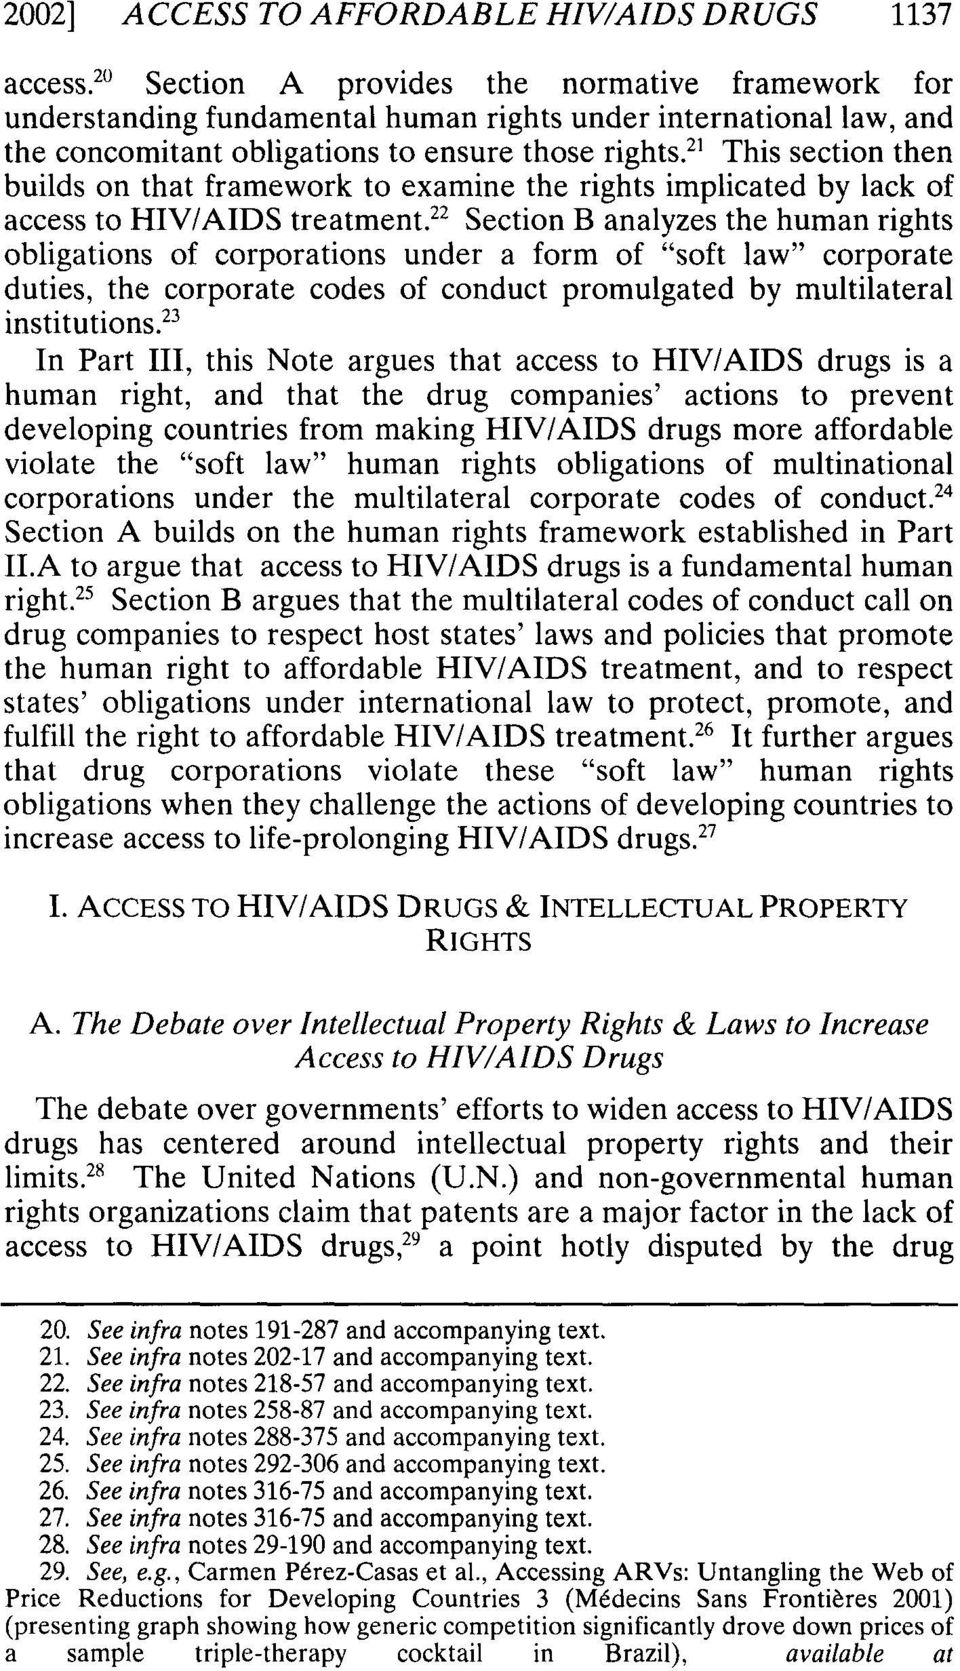 21 This section then builds on that framework to examine the rights implicated by lack of access to HIV/AIDS treatment.